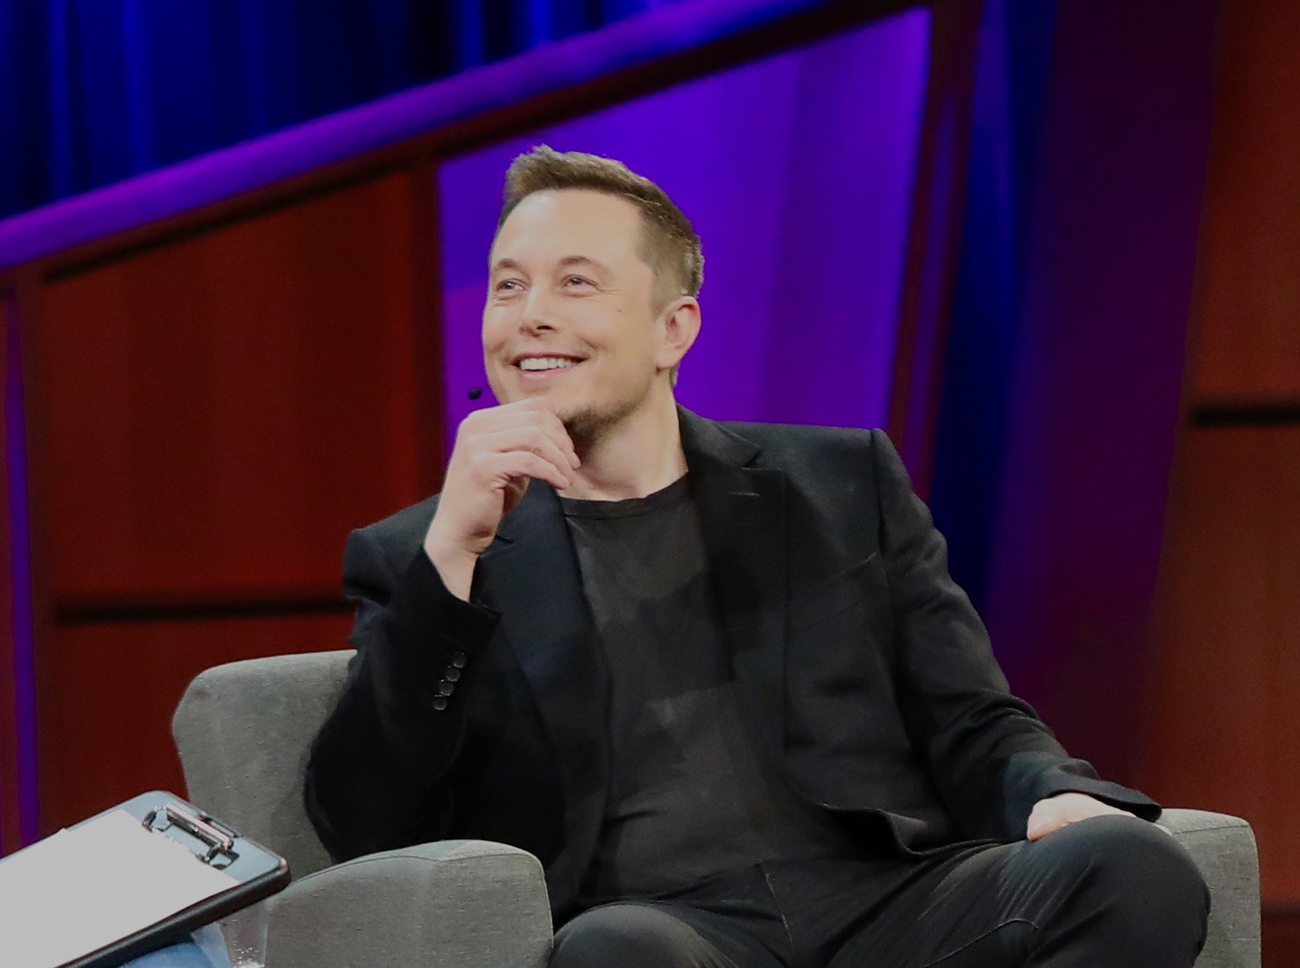 A photograph shows Elon Musk